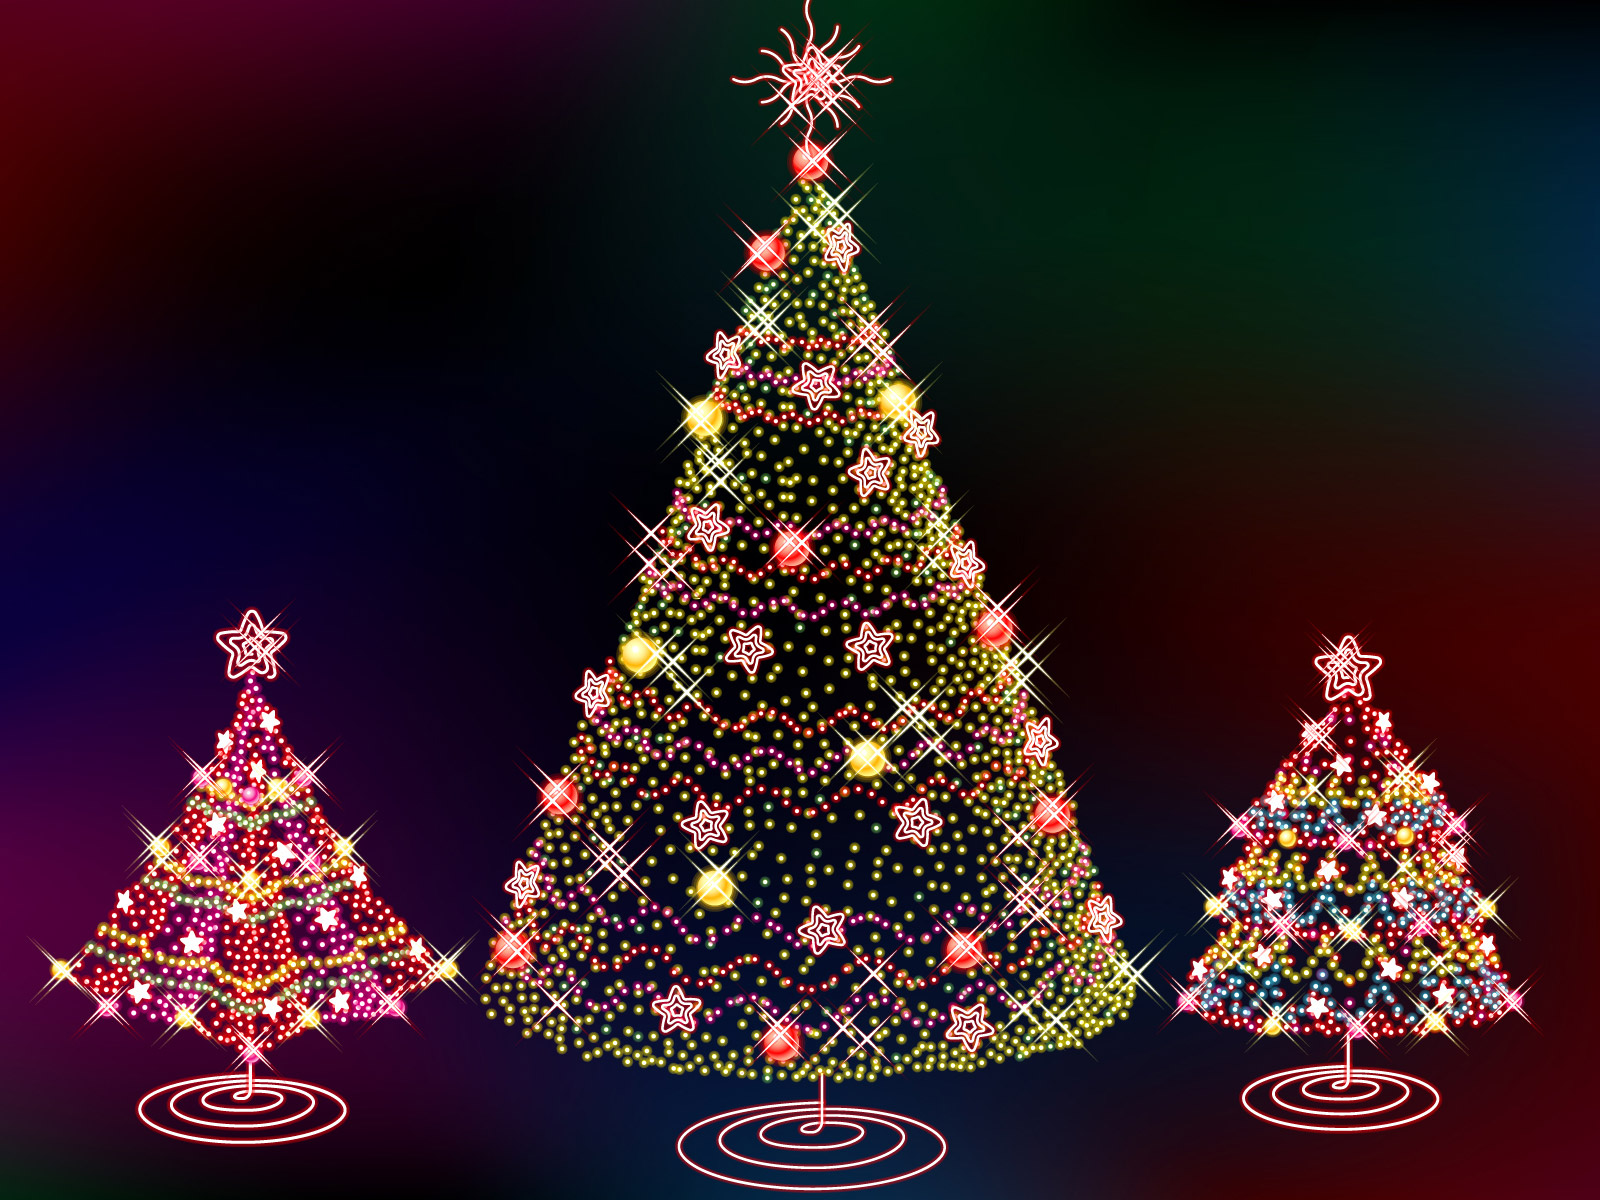 Christmas lights desktop Wallpapers HD photo images 9